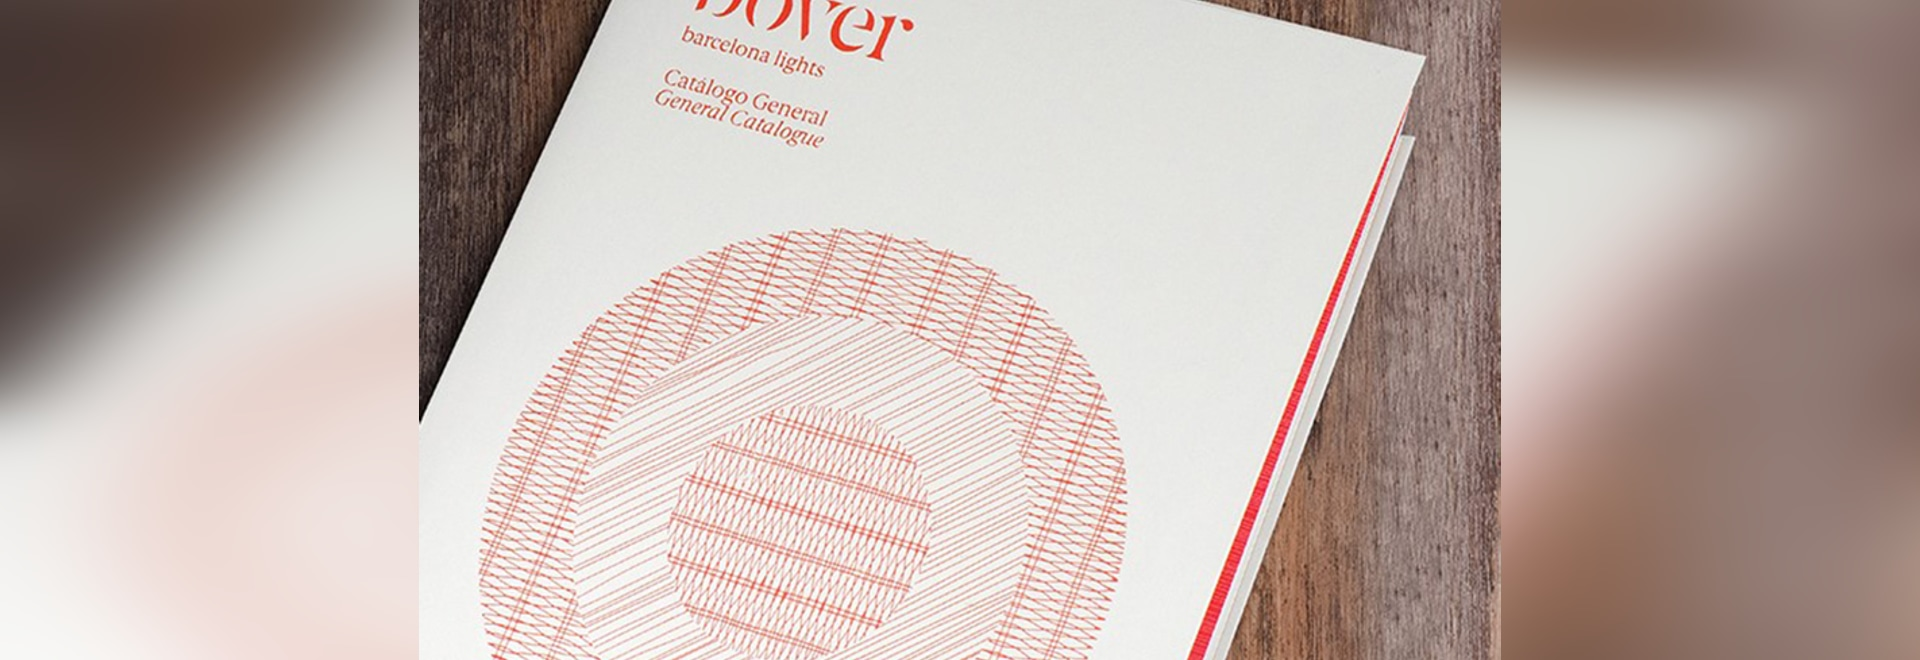 Bover's New Catalogue